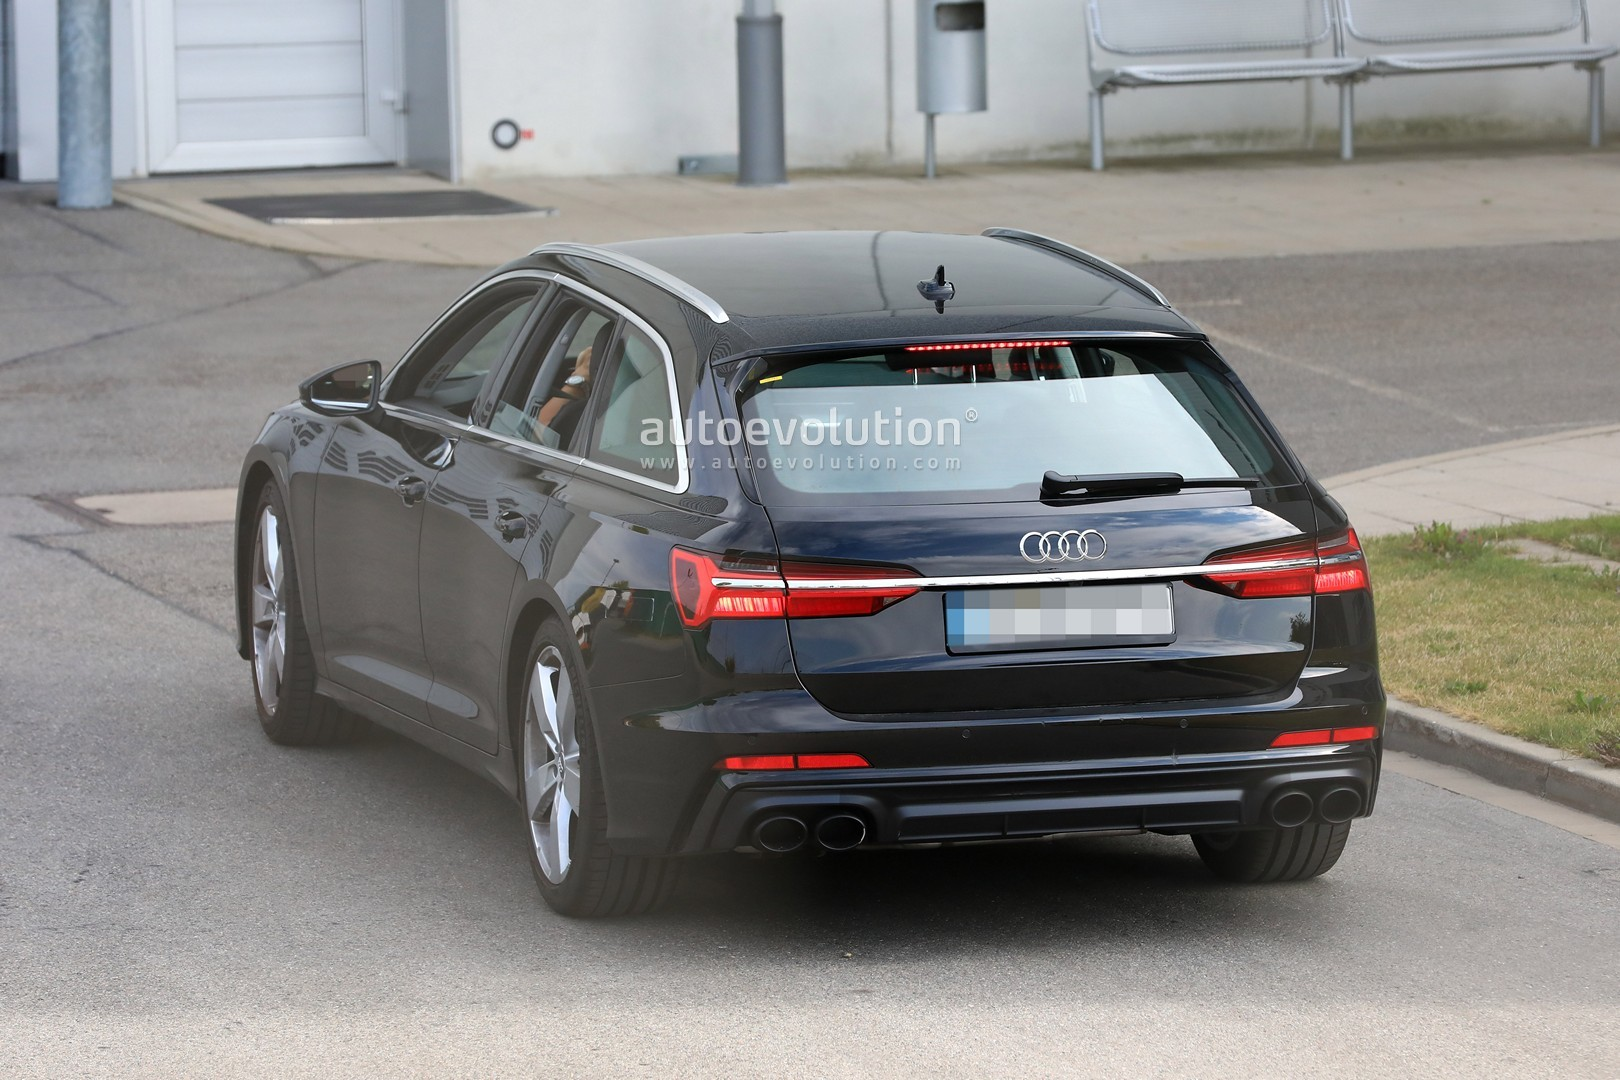 2017 - [Audi] A6 Berline & Avant [C8] - Page 10 2020-audi-s6-avant-spied-with-no-camo-looks-very-understated_8